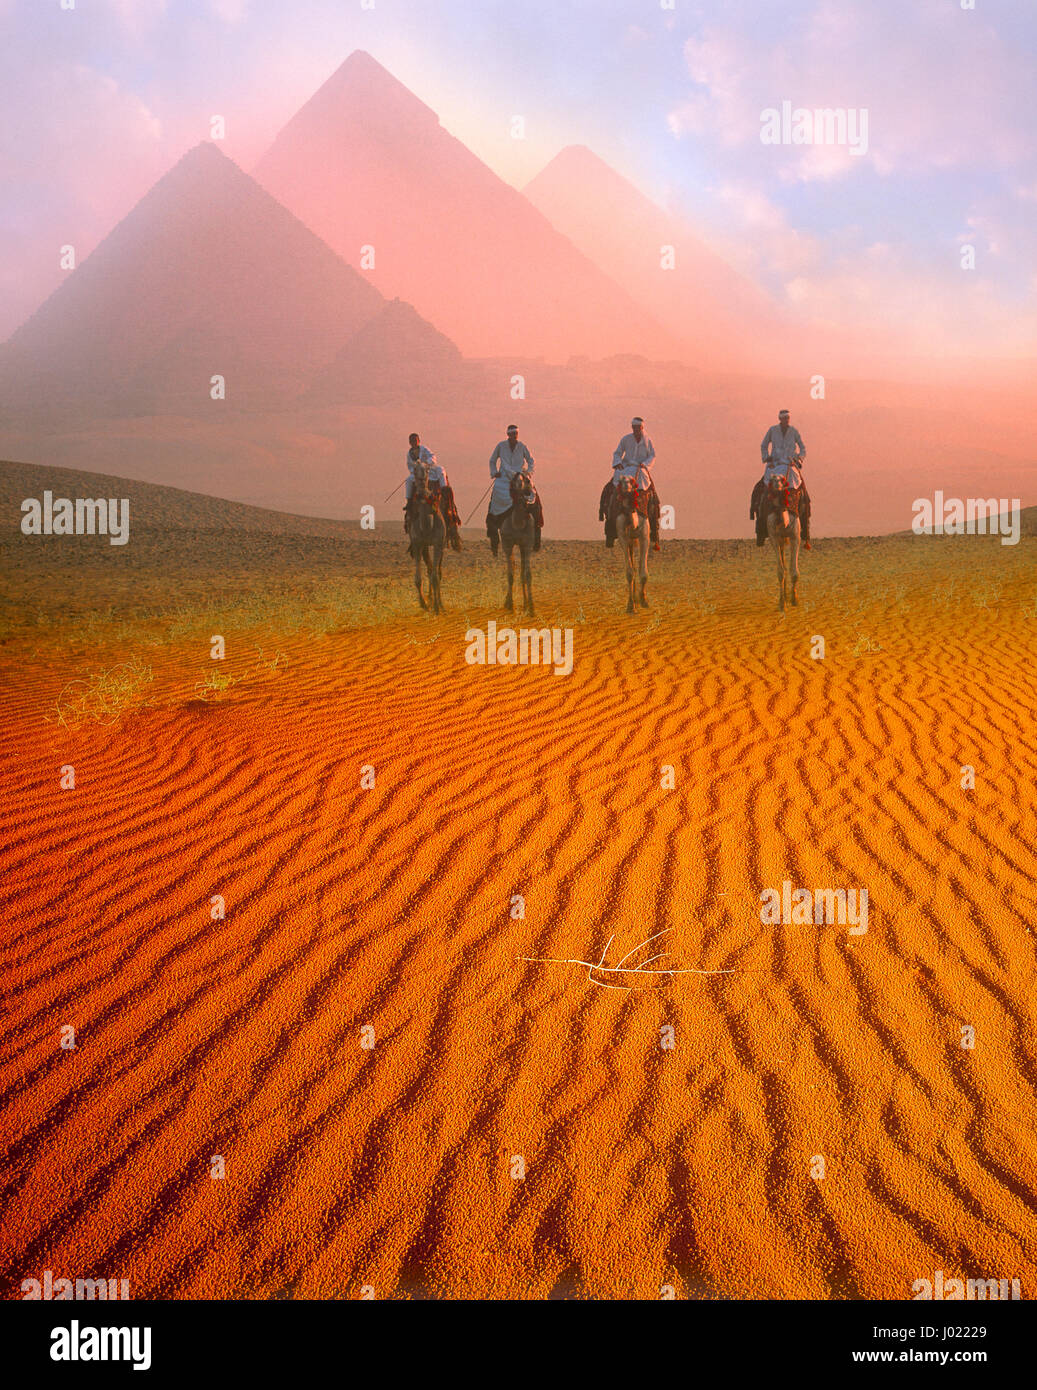 Pyramids and camelriders at dawn, Giza, Cairo, Egypt - Stock Image